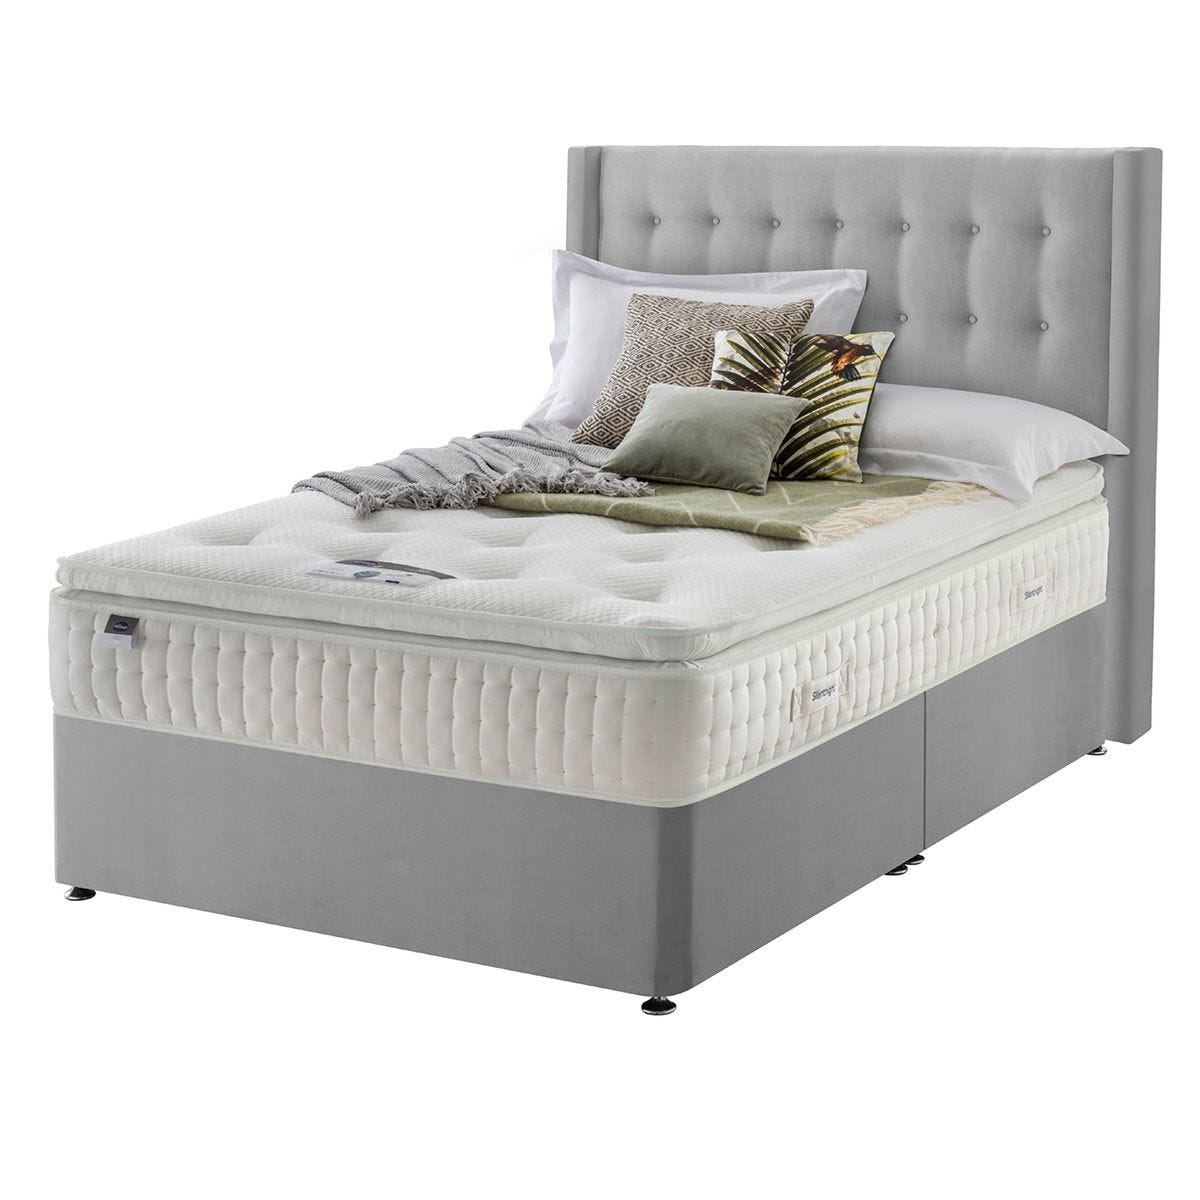 Silentnight Mirapocket Latex 1400 Non Storage Divan Bed - Velvet Silver